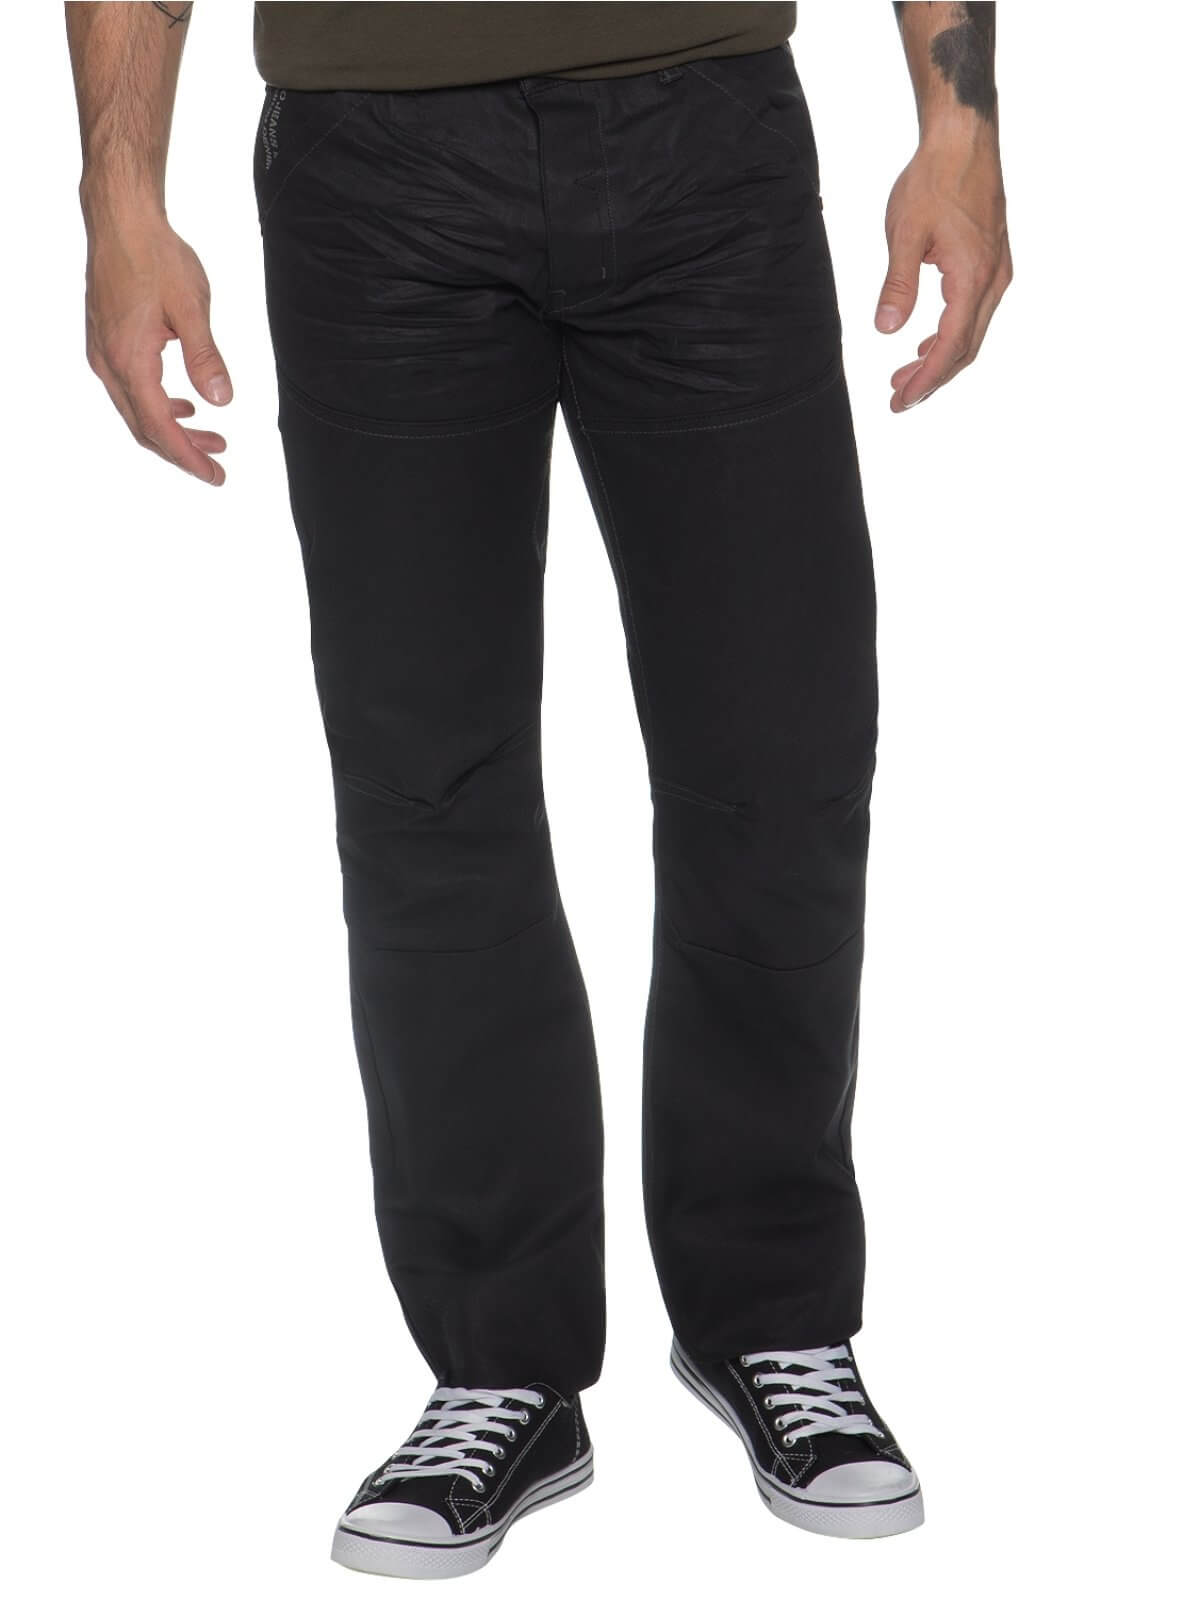 Mens Black Regular Fit Denim Jeans EZ329 | Enzo Designer Menswear